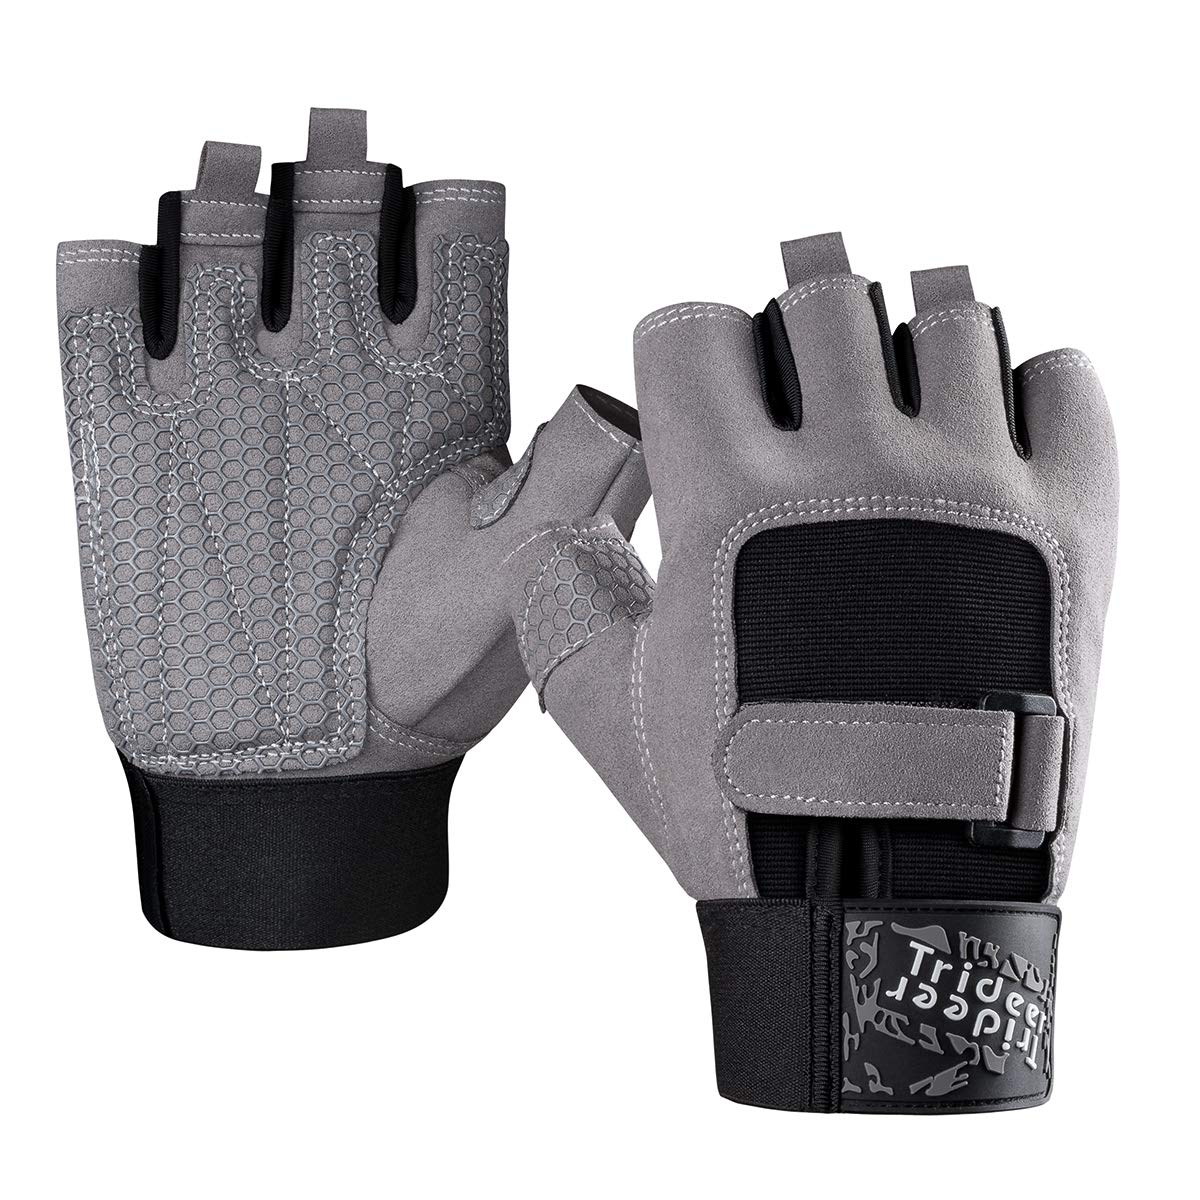 Trideer Padded Weight Lifting Gloves, Gym Gloves, Workout Gloves, Rowing Gloves, Exercise Gloves for Powerlifting, Fitness, Cross Training for Men & Women (A# Grey Basic, S (Fits 6.7-7.5 Inches))